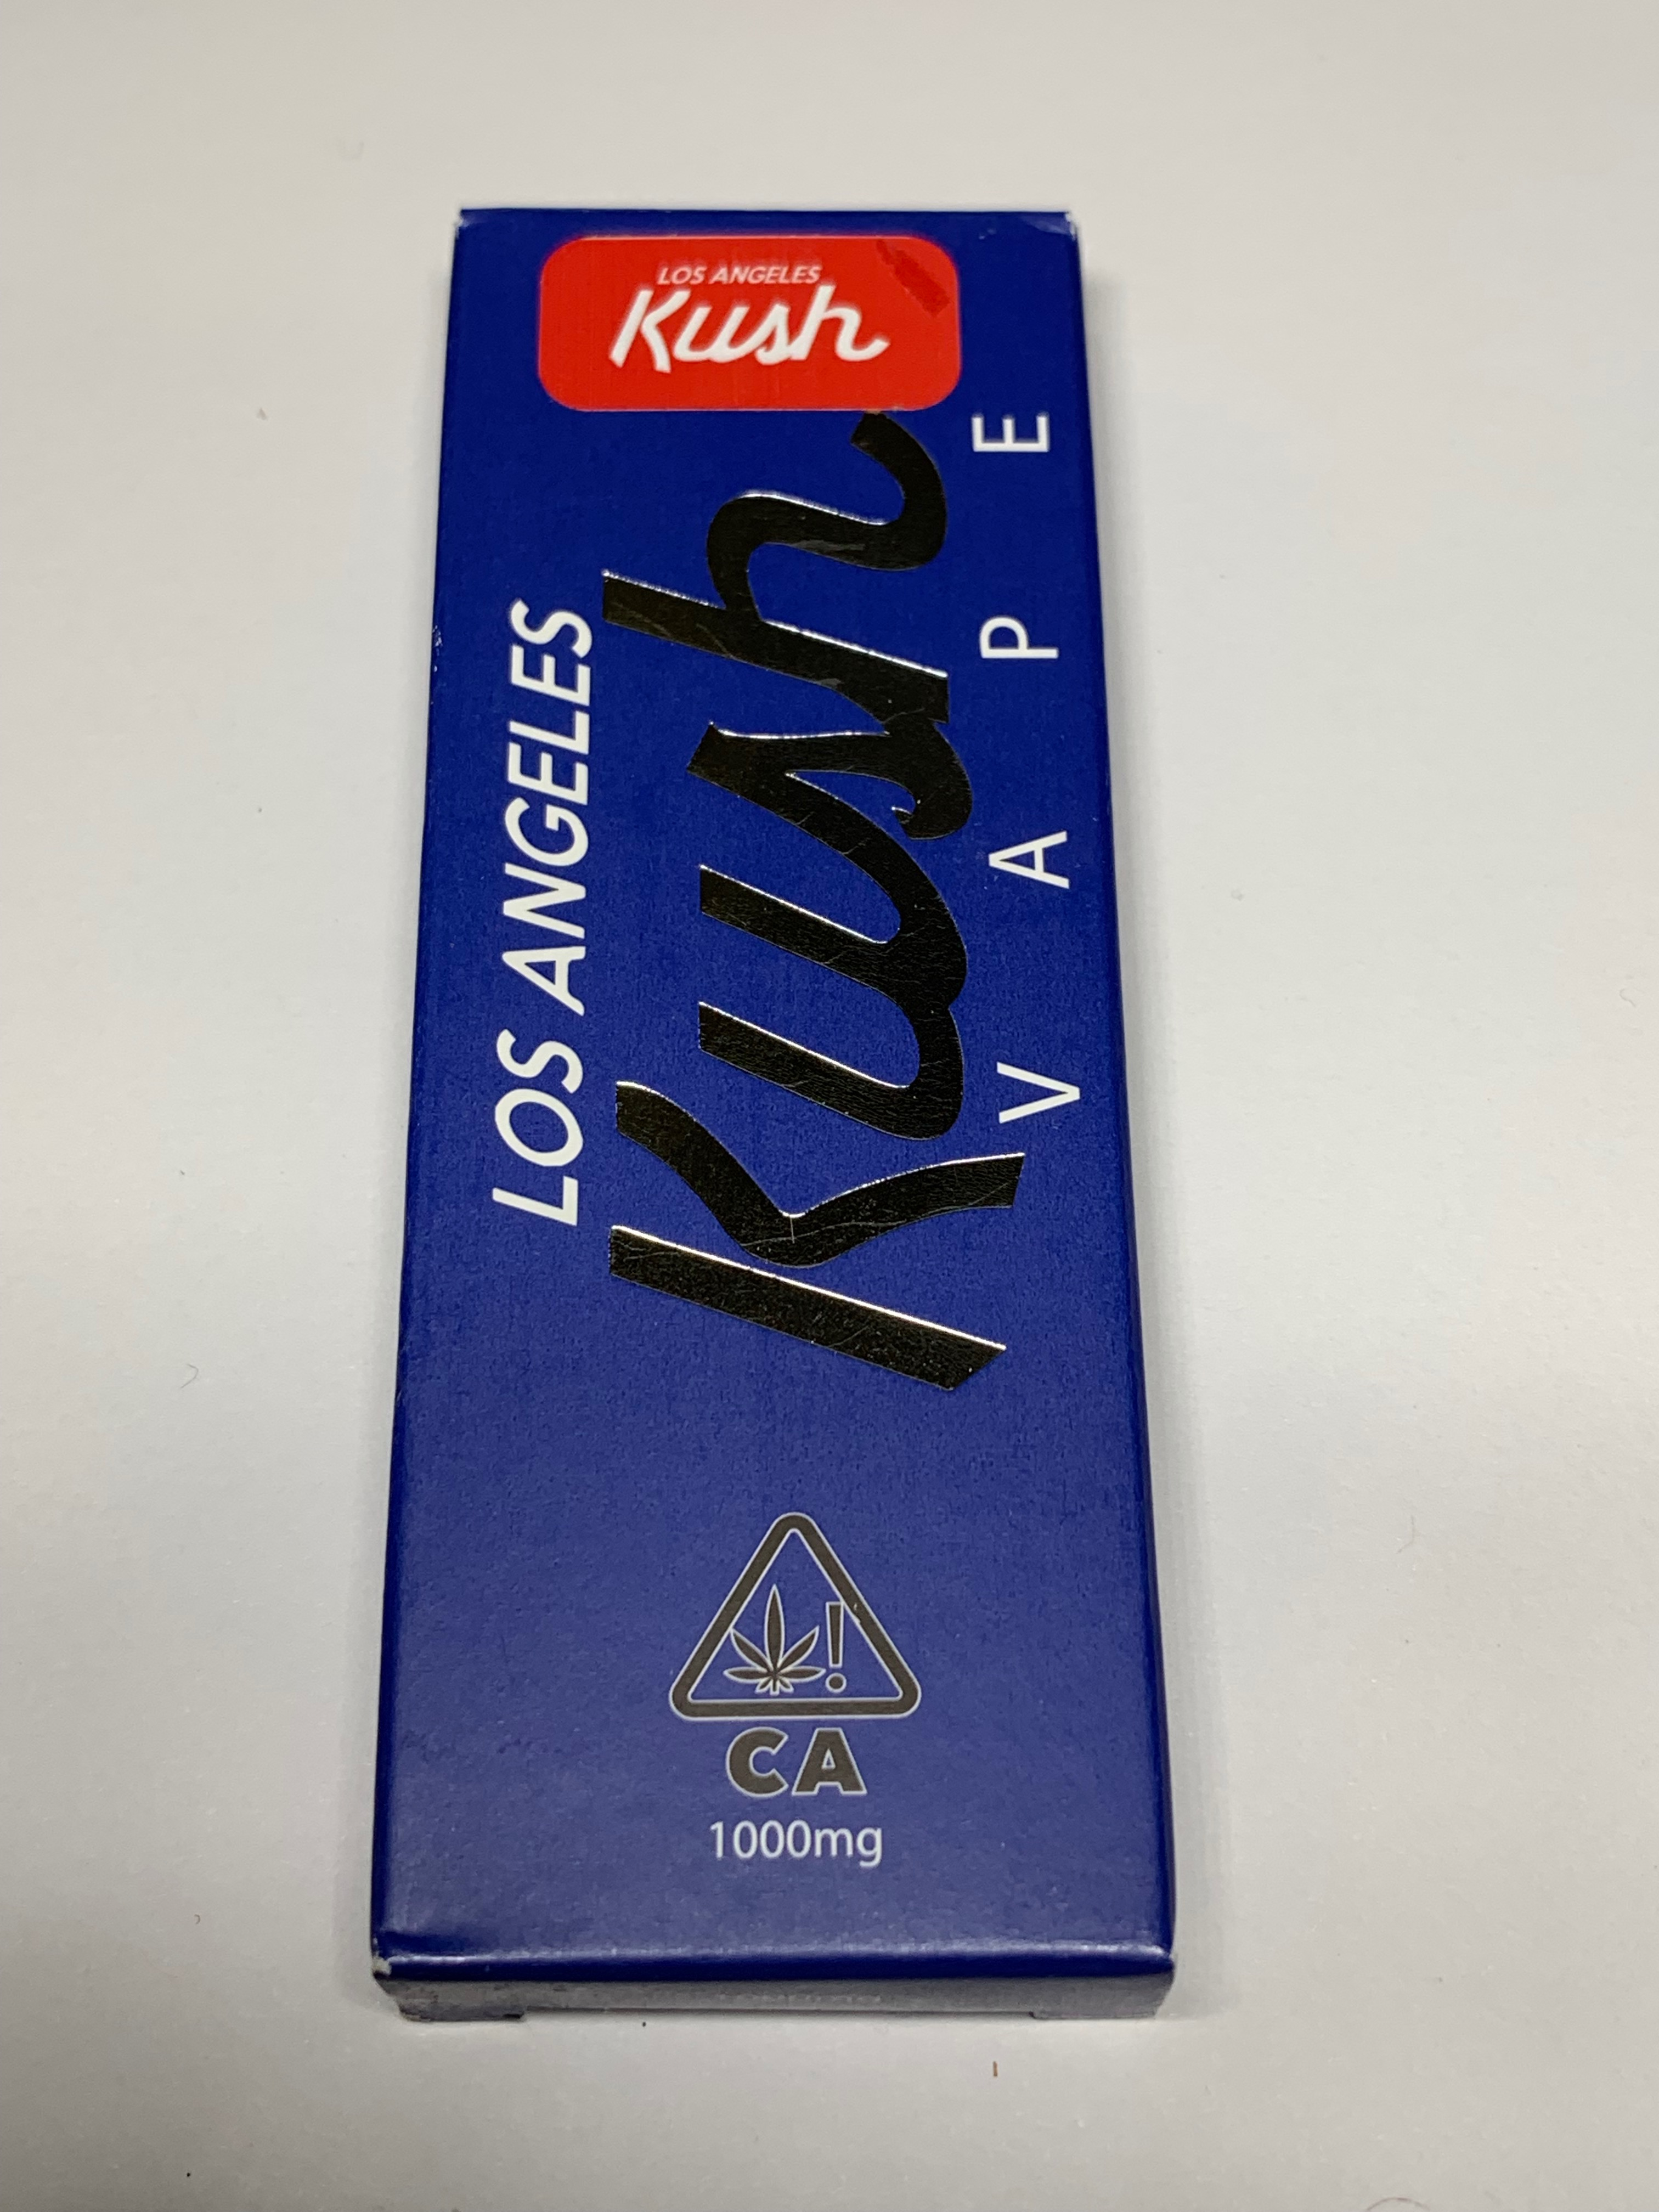 LOS ANGELES KUSH  - REDBOX  Product Image